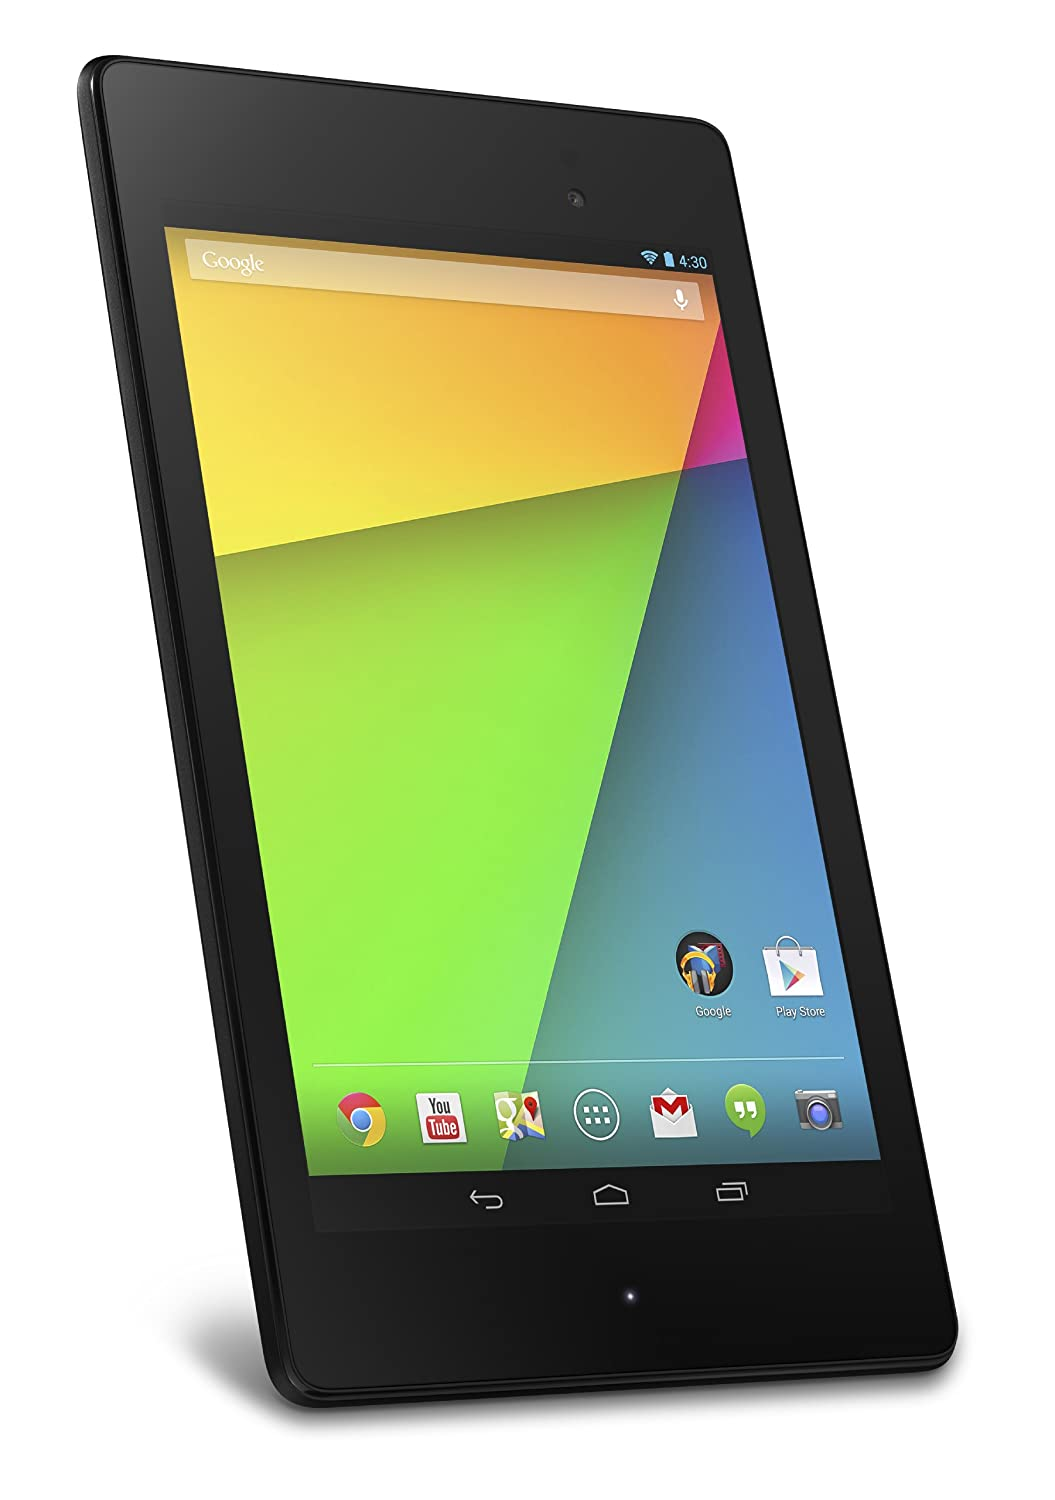 Google Nexus 7 deals